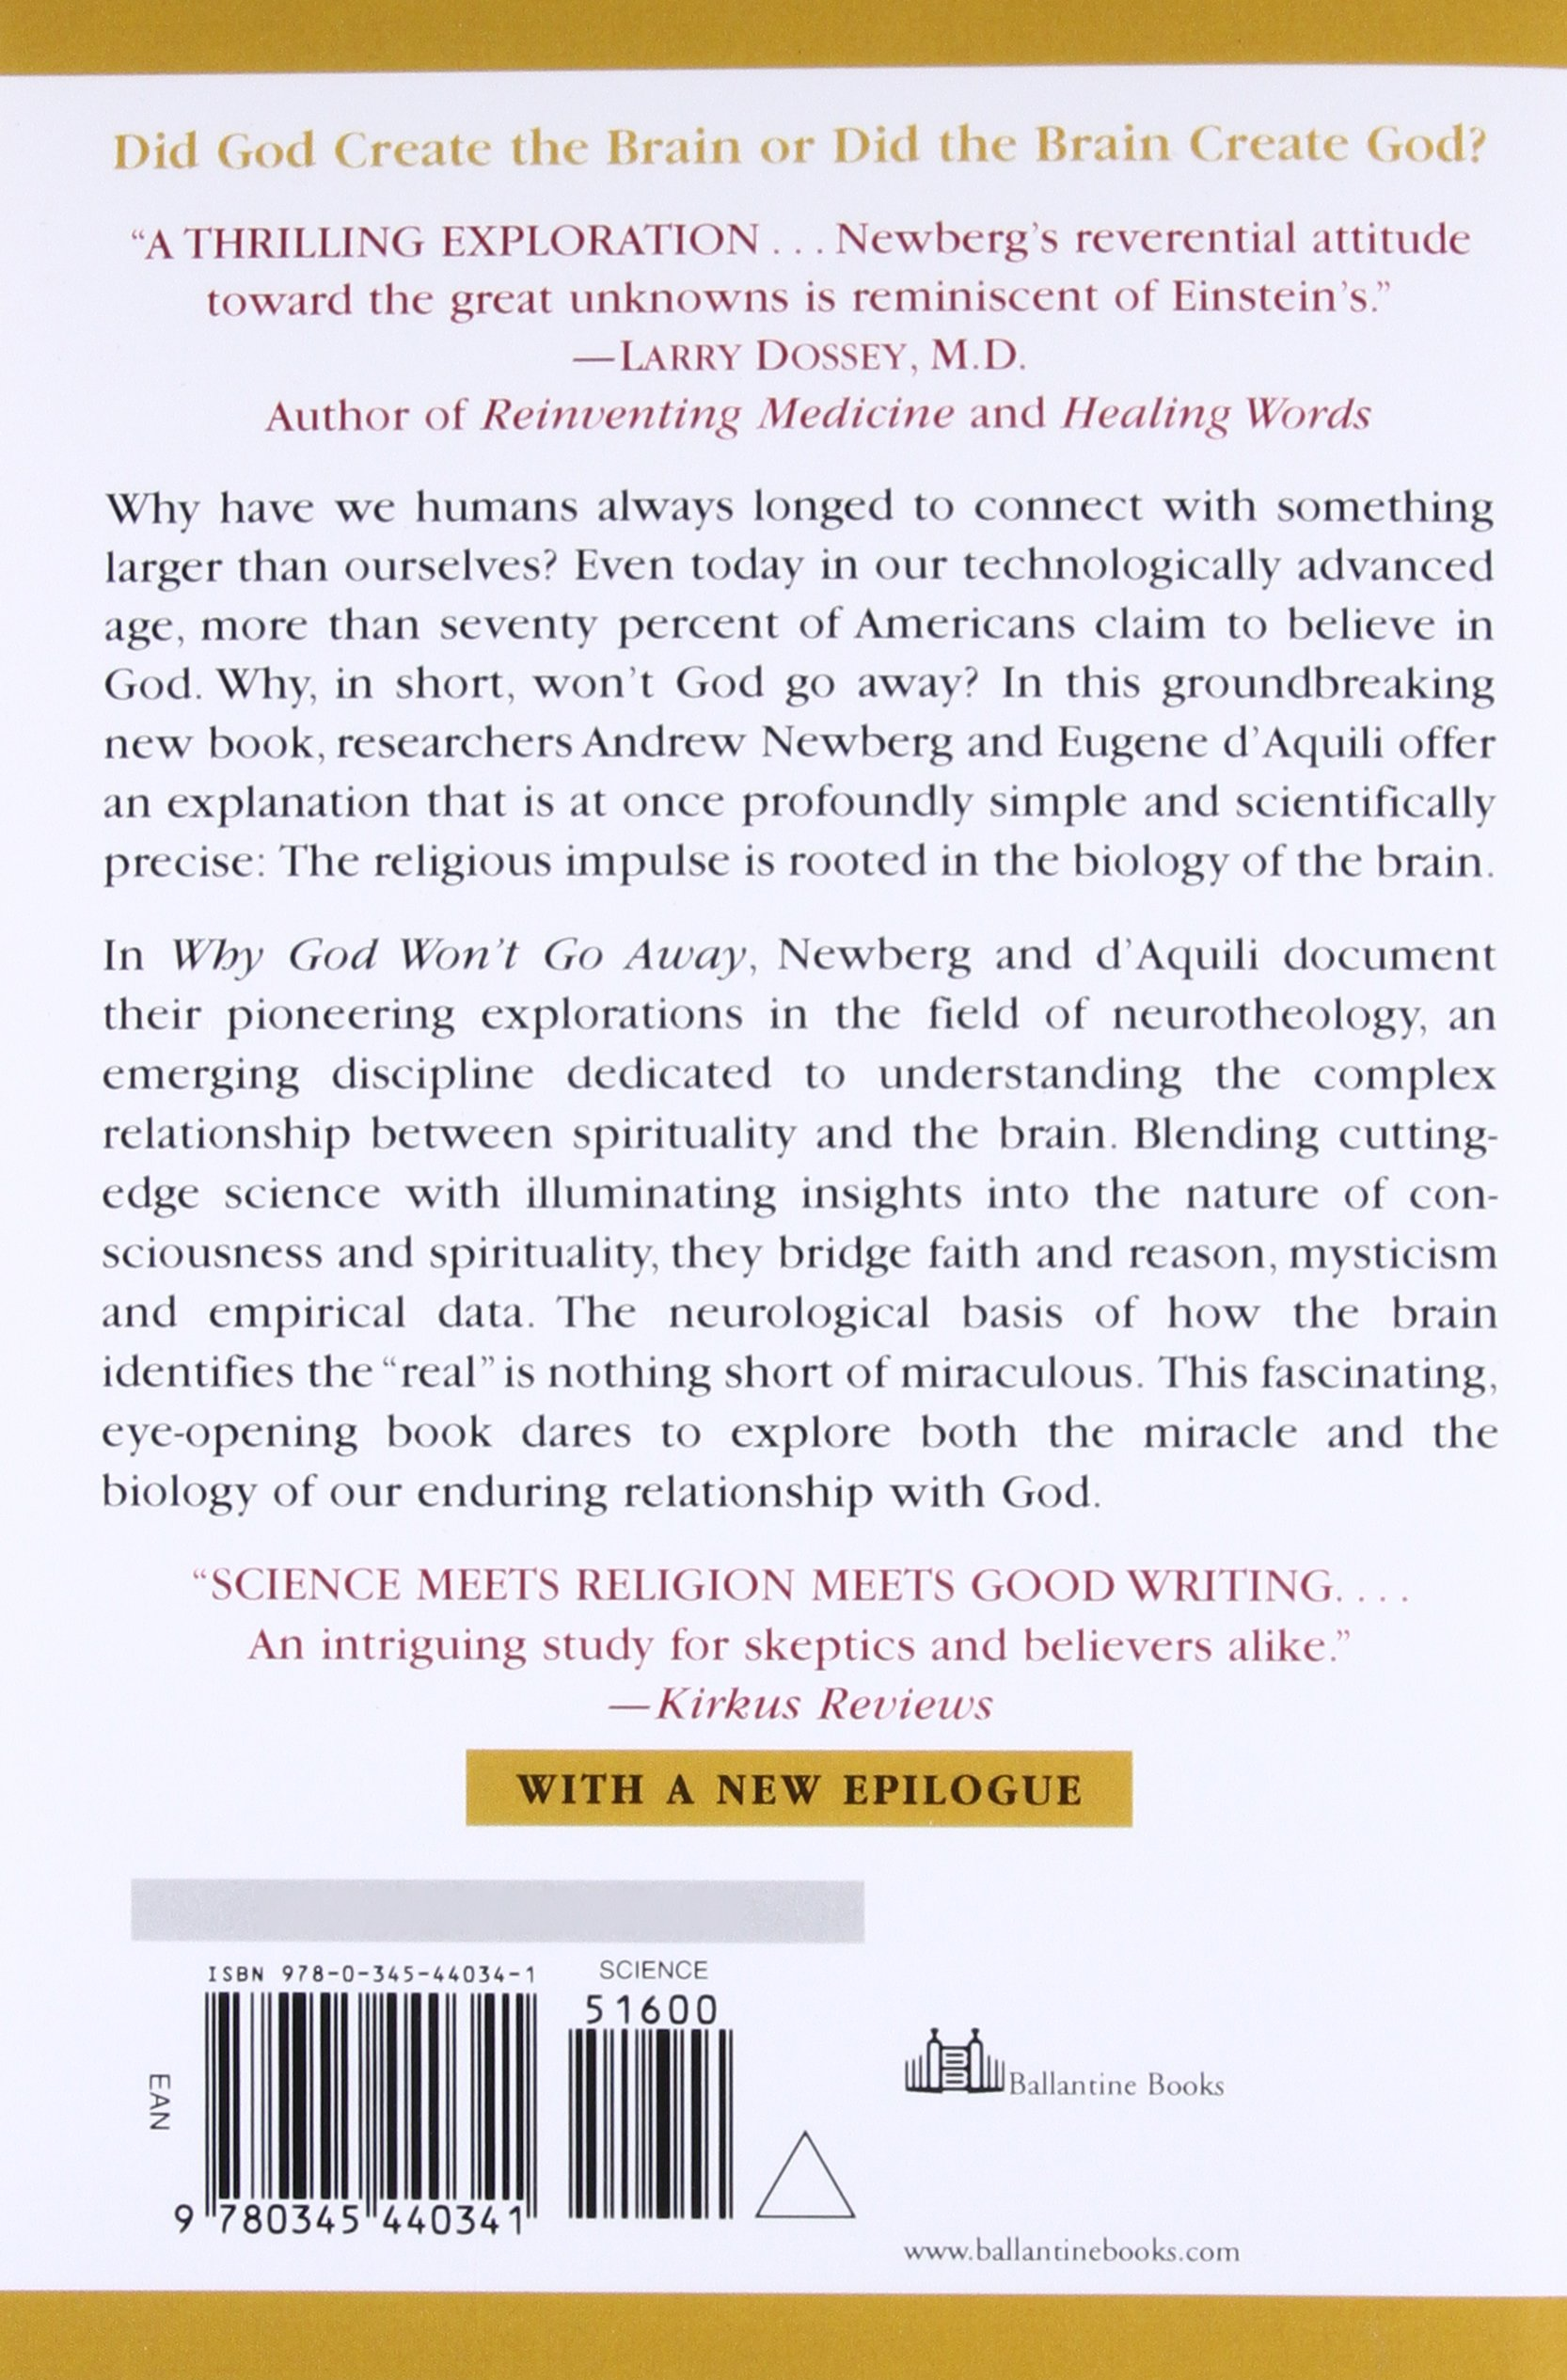 Why God Won't Go Away: Brain Science and the Biology of Belief: Andrew  Newberg, Eugene D'Aquili, Vince Rause: 9780345440341: Amazon.com: Books